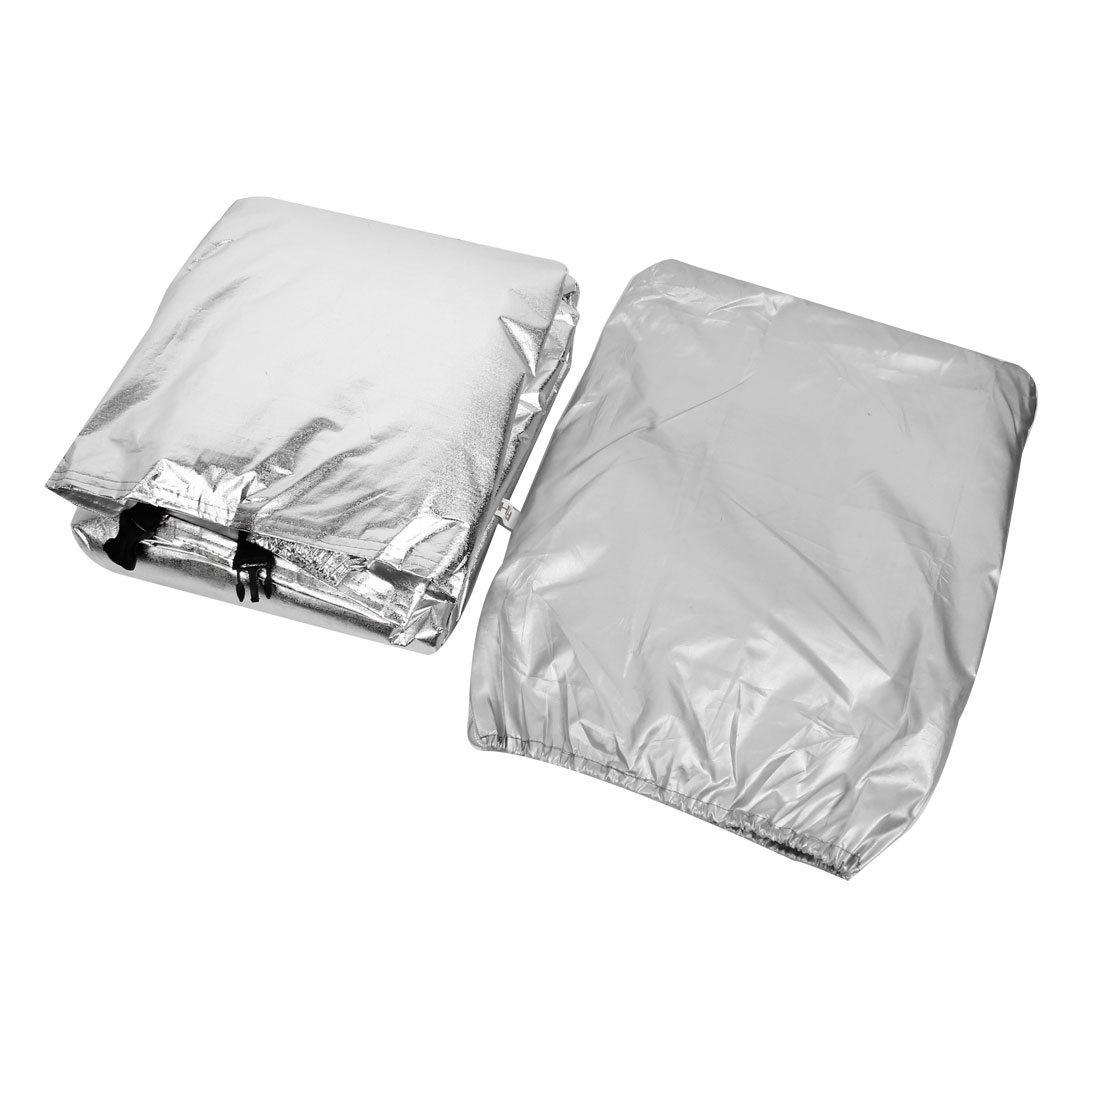 Motorcycle Scooter Rain Resistant Waterproof Storage Cover 230cmx95cmx125cm